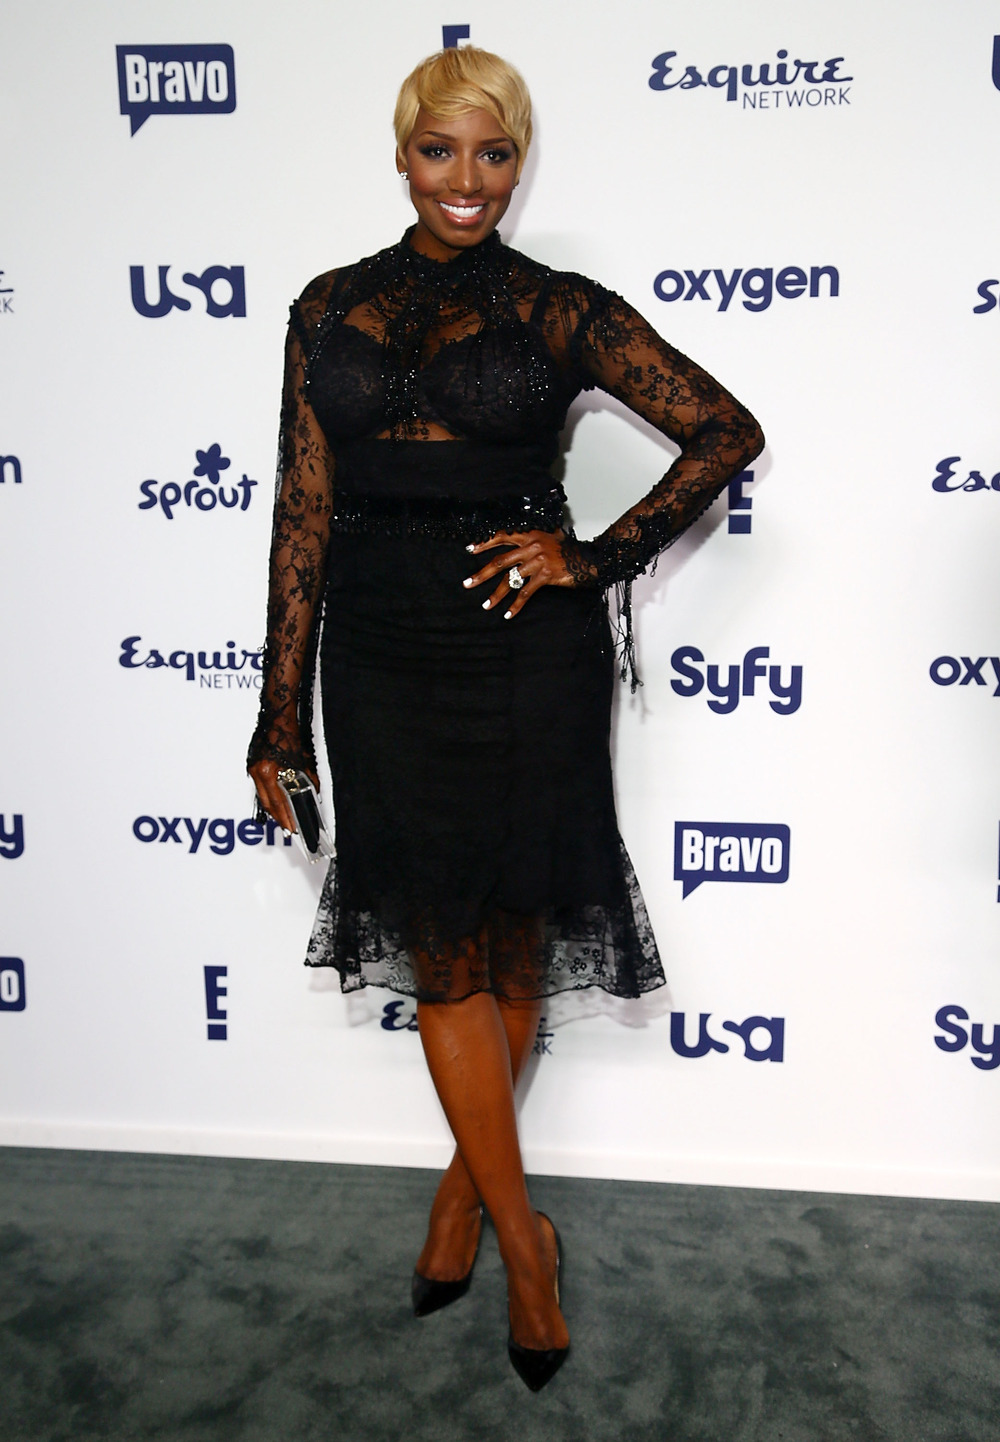 NeNe Leakes Attends Bravo Upfronts — Is She Staying on RHoA? (PHOTOS)